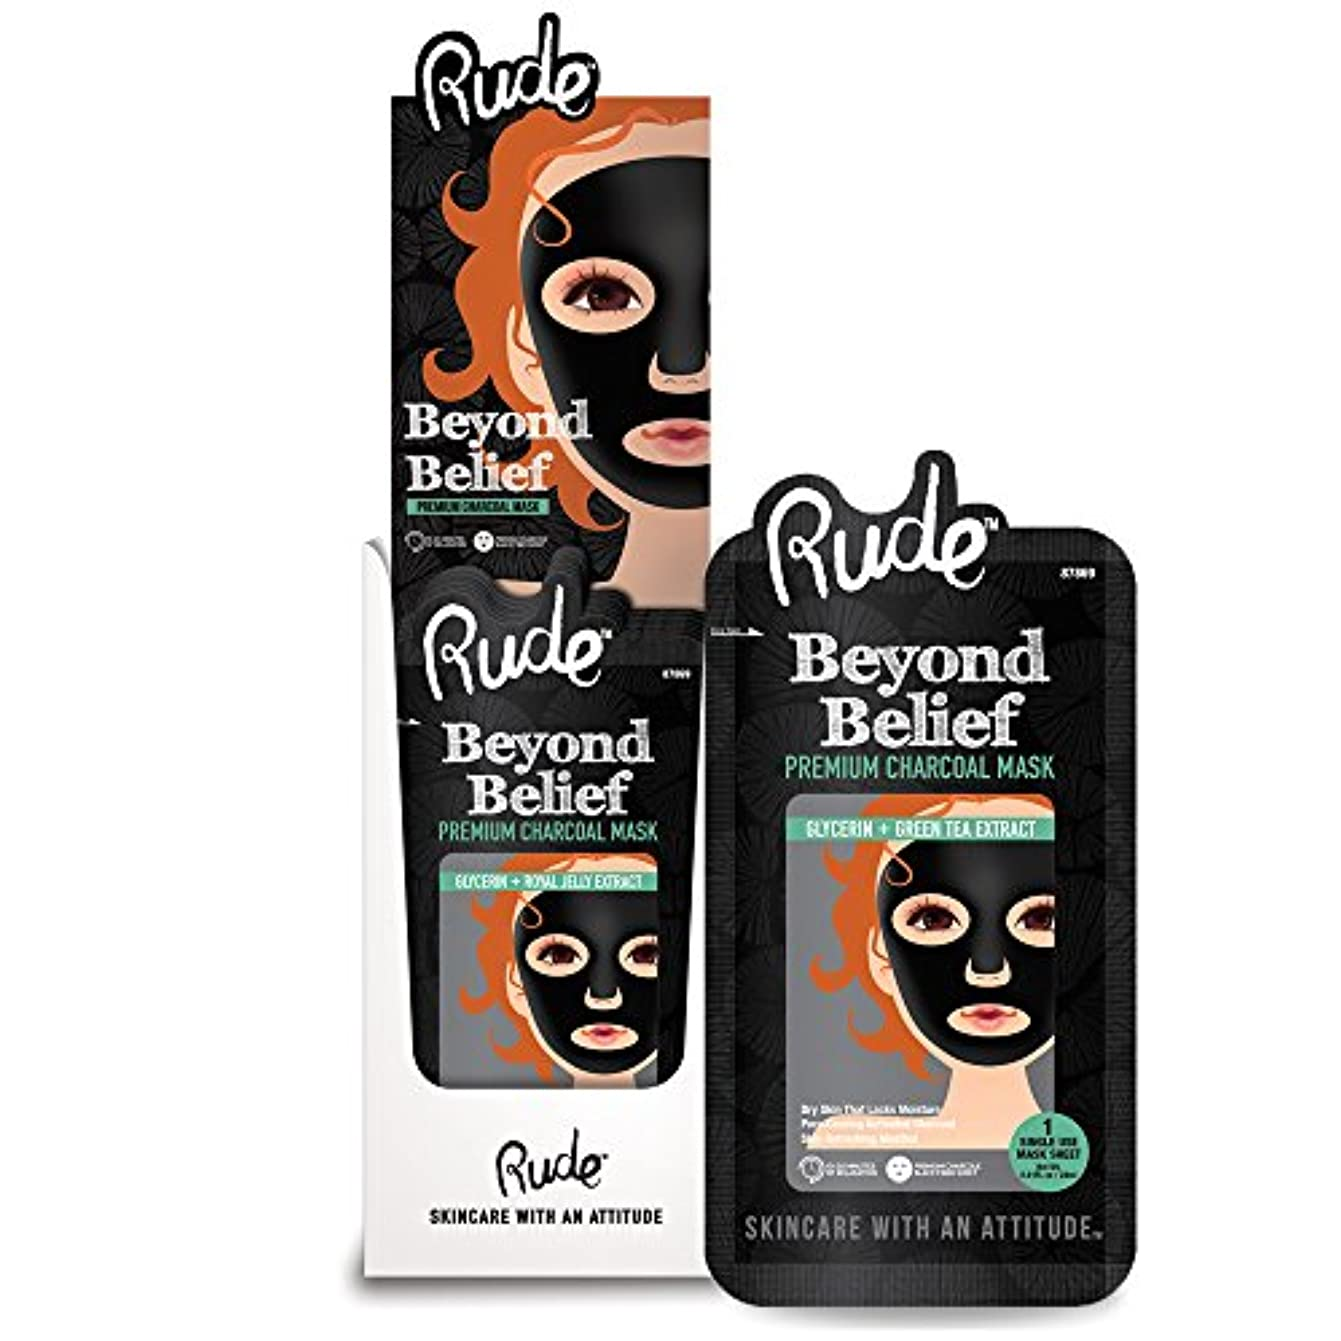 RUDE Beyond Belief Purifying Charcoal Mask Display Set, 36 Pieces (並行輸入品)